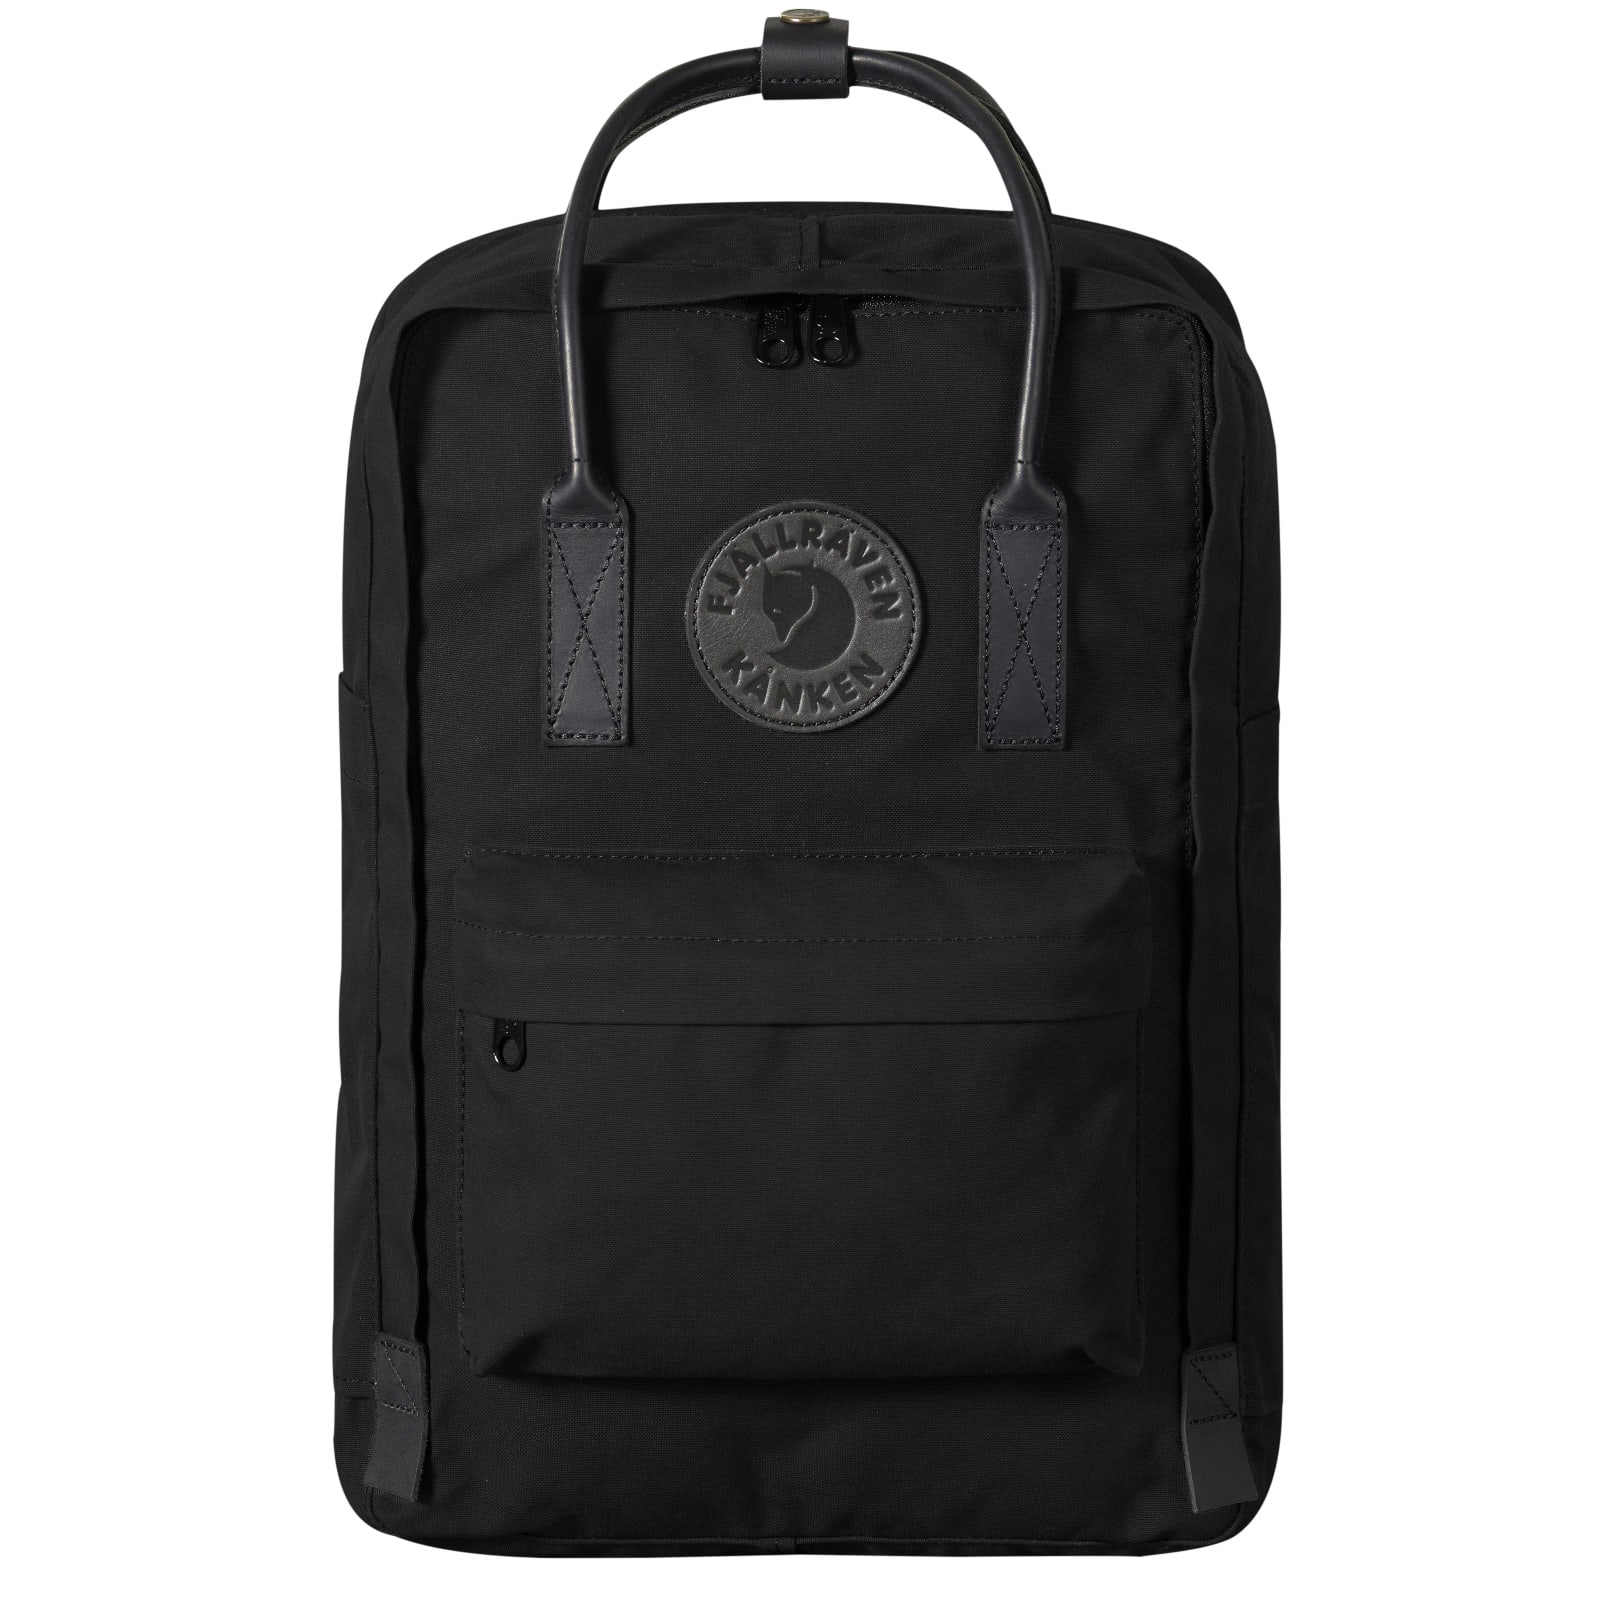 18731134 Kjøp Fjällräven Kånken No. 2 Laptop 15 Black fra Outnorth